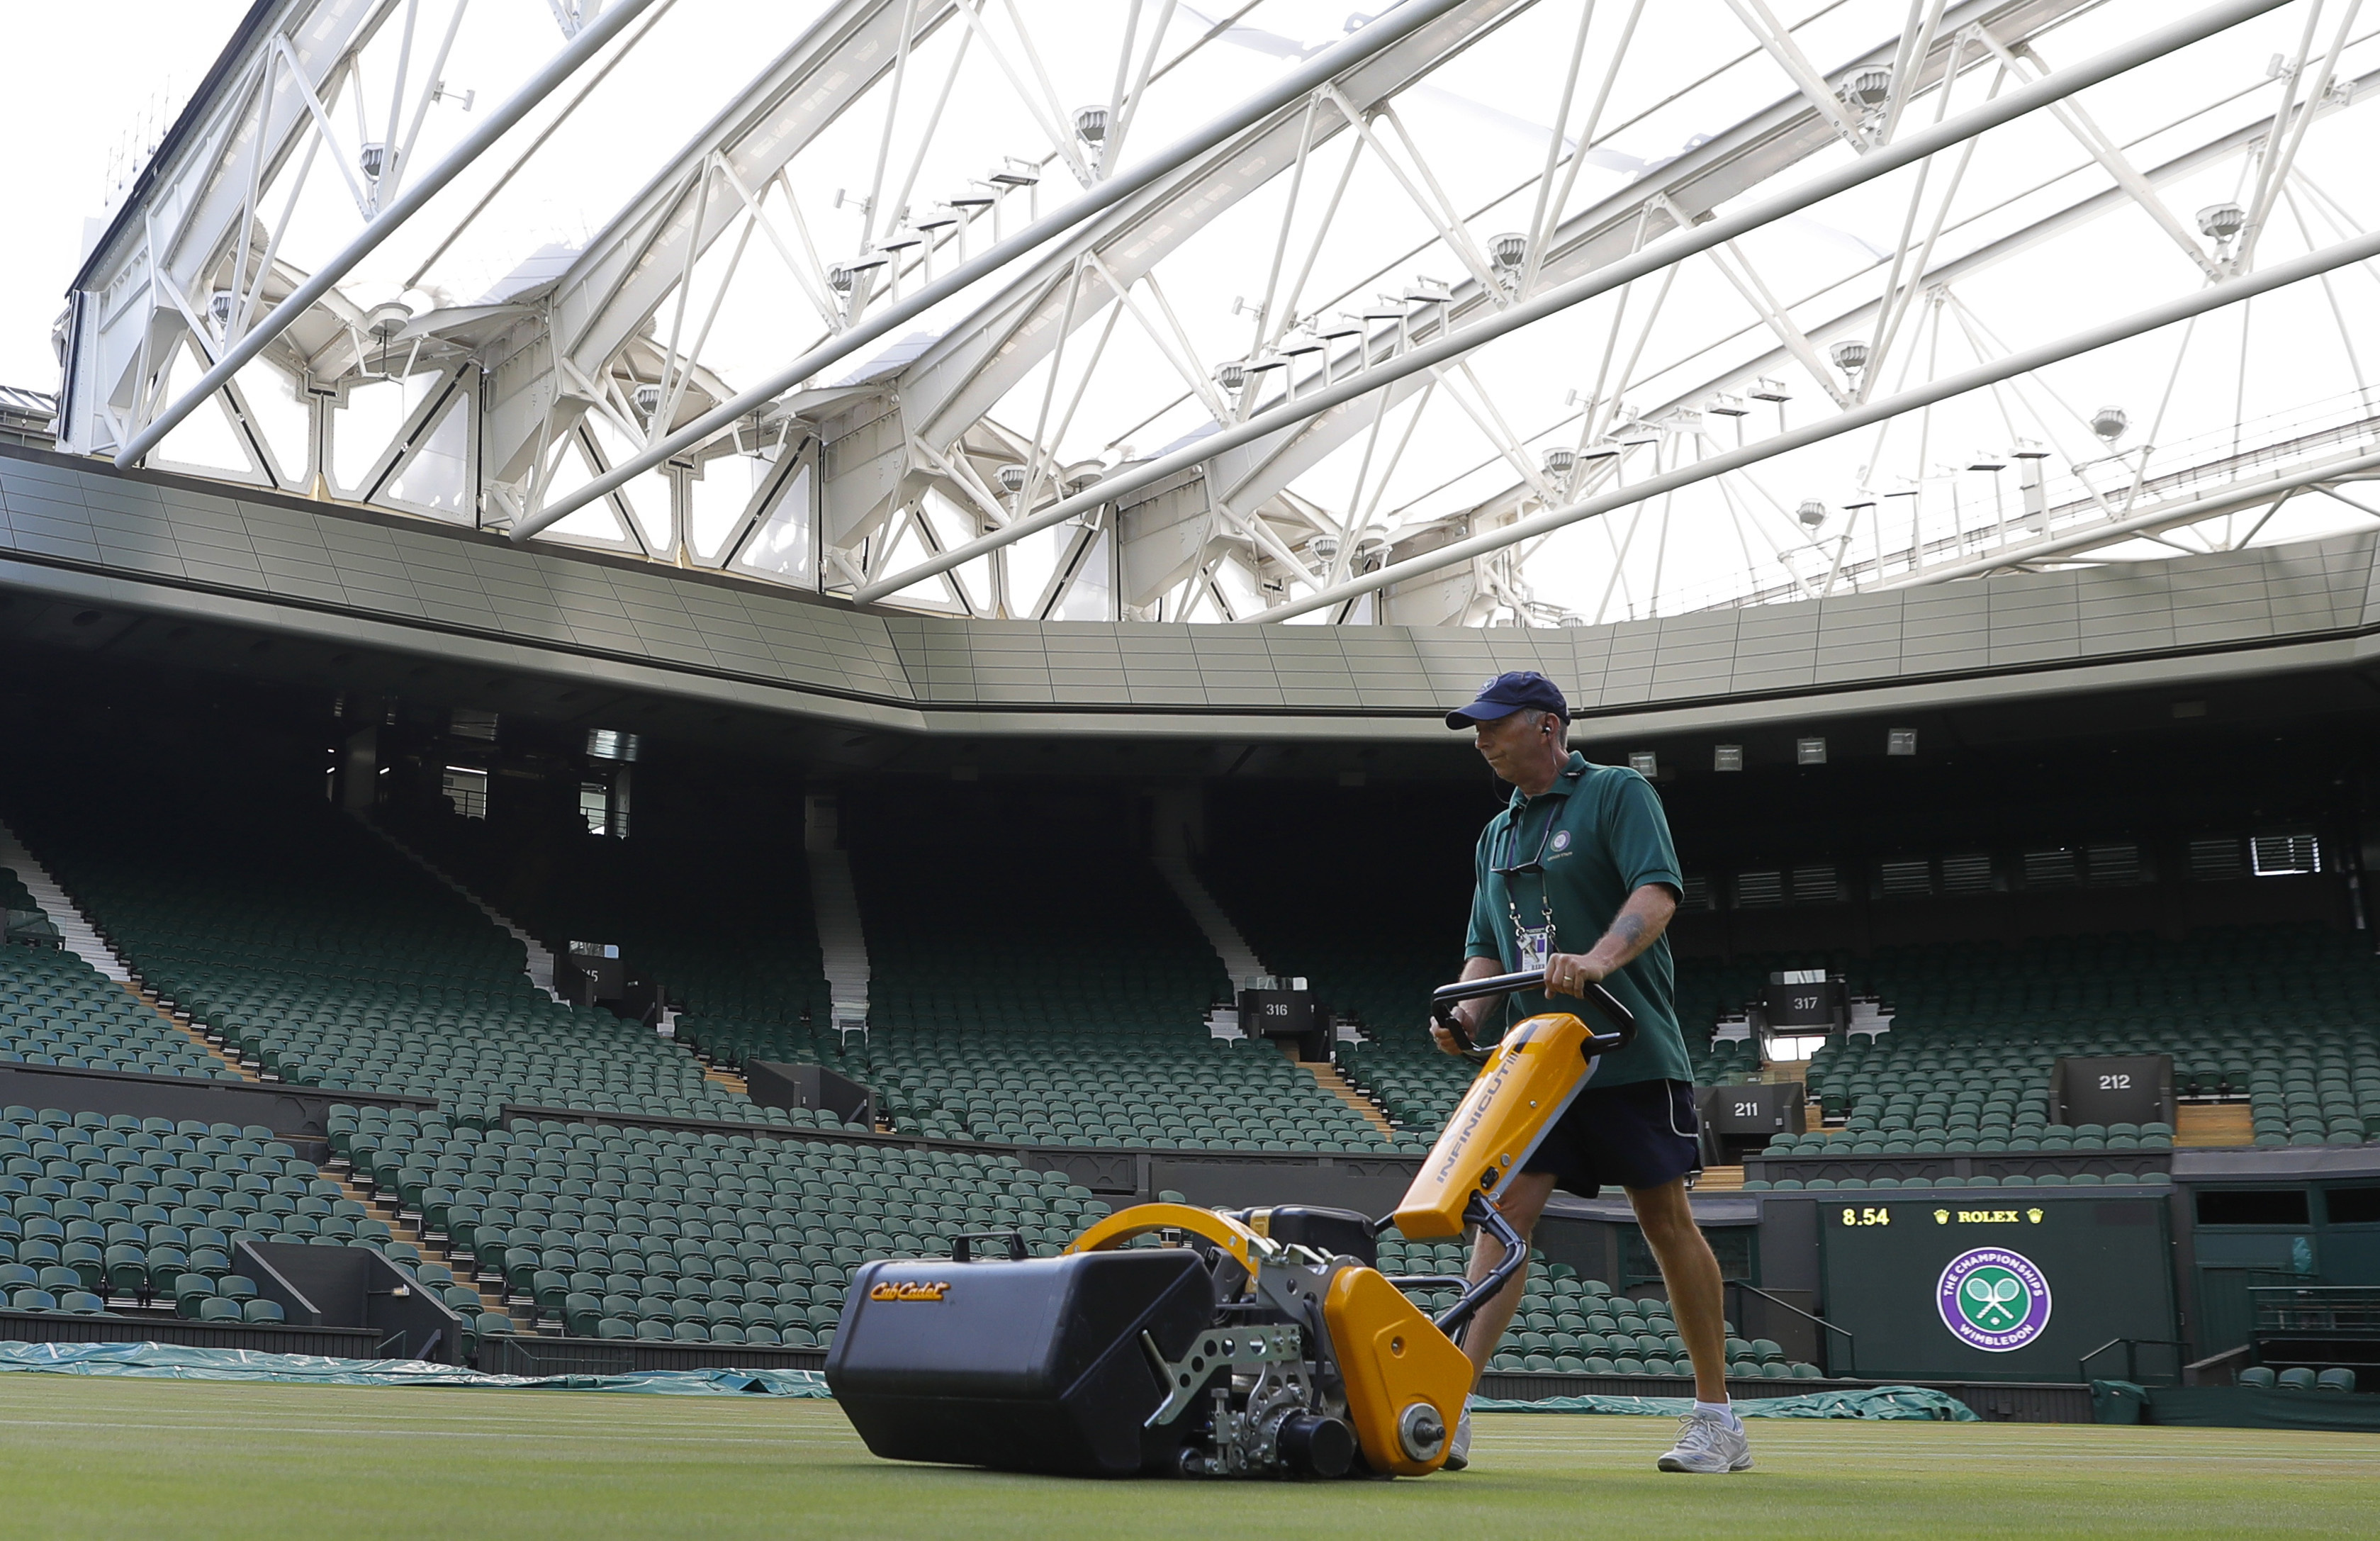 Rick Street mows the grass on Centre Court at the All England Club on day nine at the Wimbledon Tennis Championships in London Thursday, July 13, 2017. At 7:30 a.m. each day of the Wimbledon fortnight, hours before competition begins, the keepers of the g